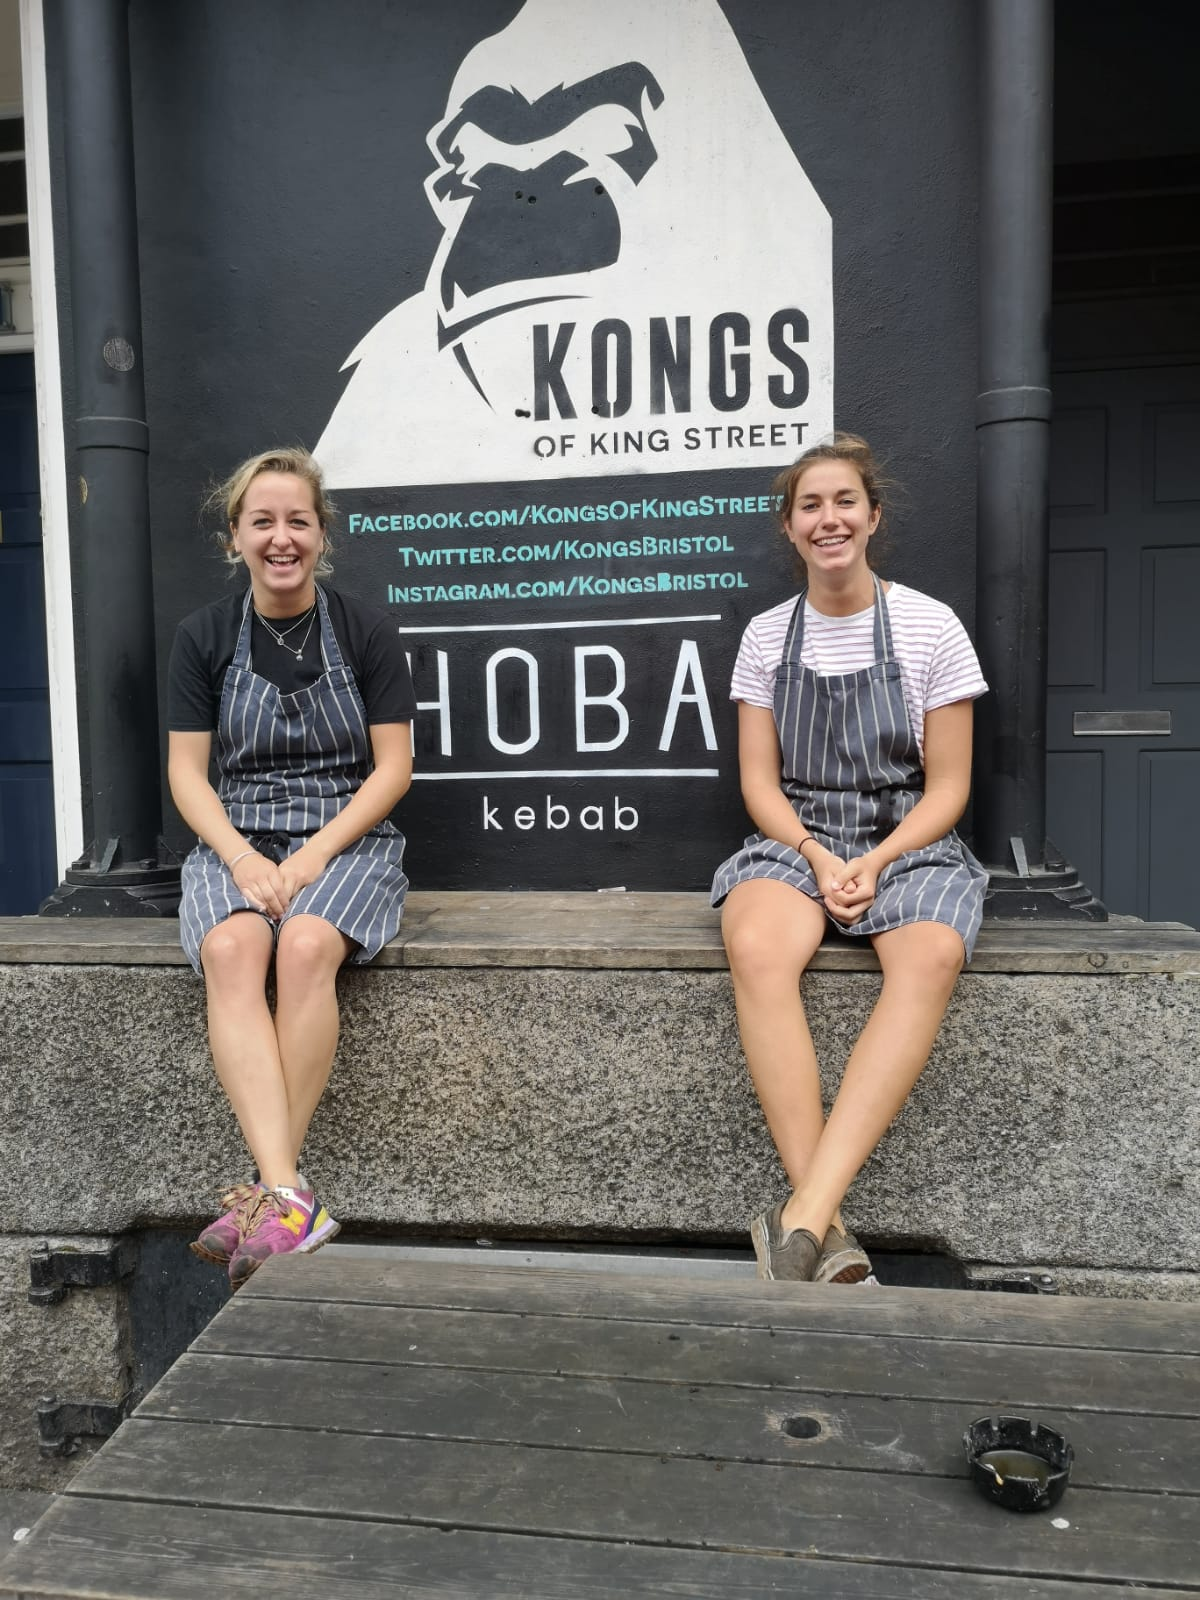 Hoba kebab founders sitting outside kongs